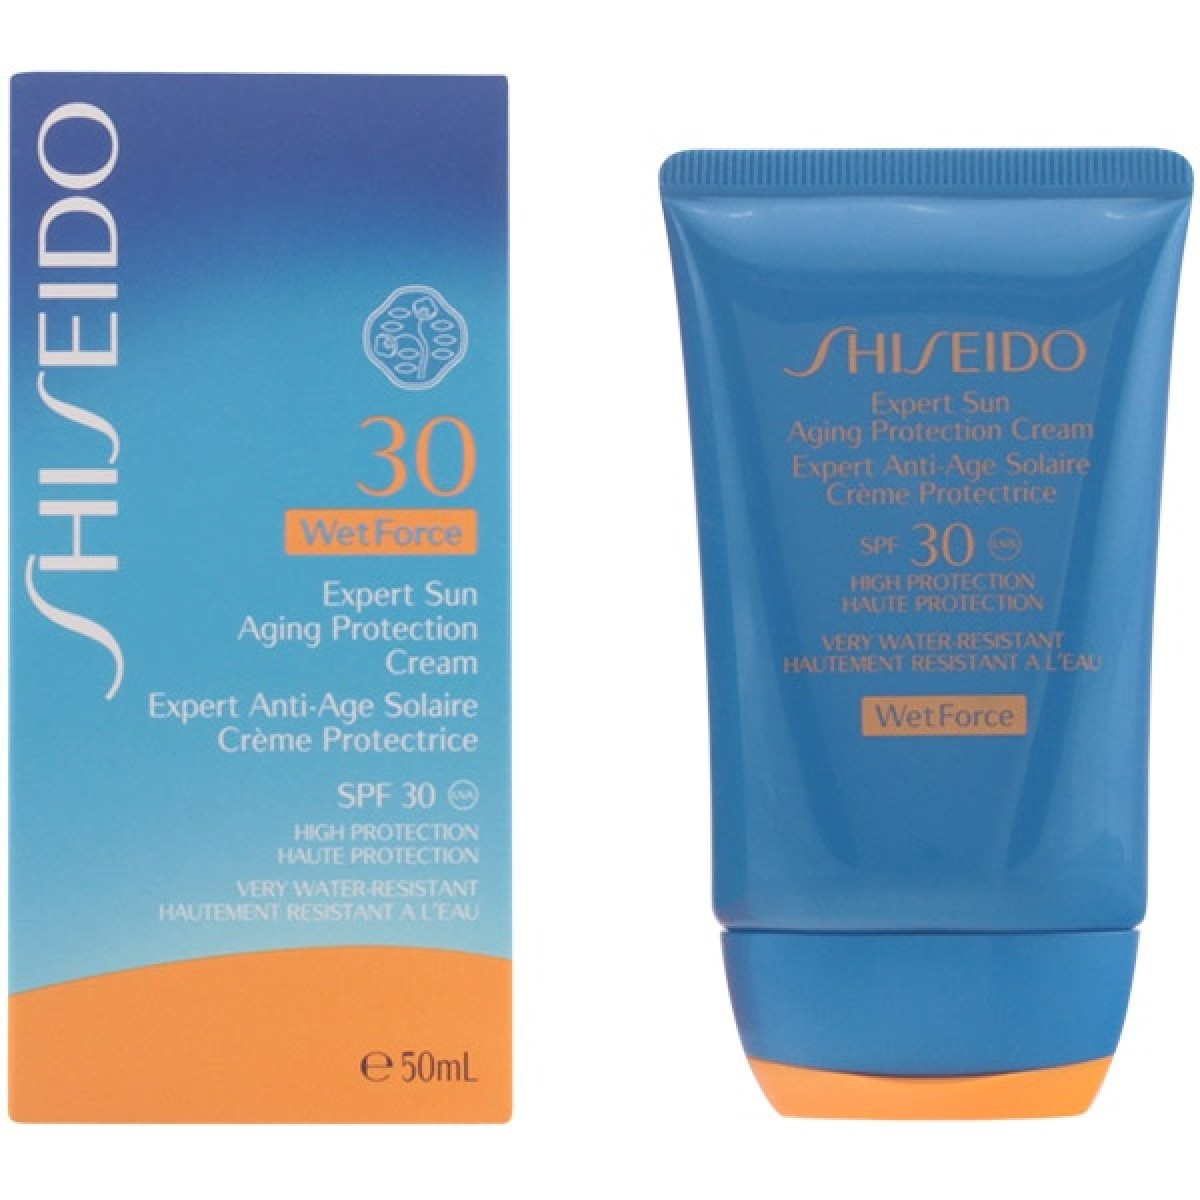 Shiseido expert sun aging protection cream plus spf30 50ml